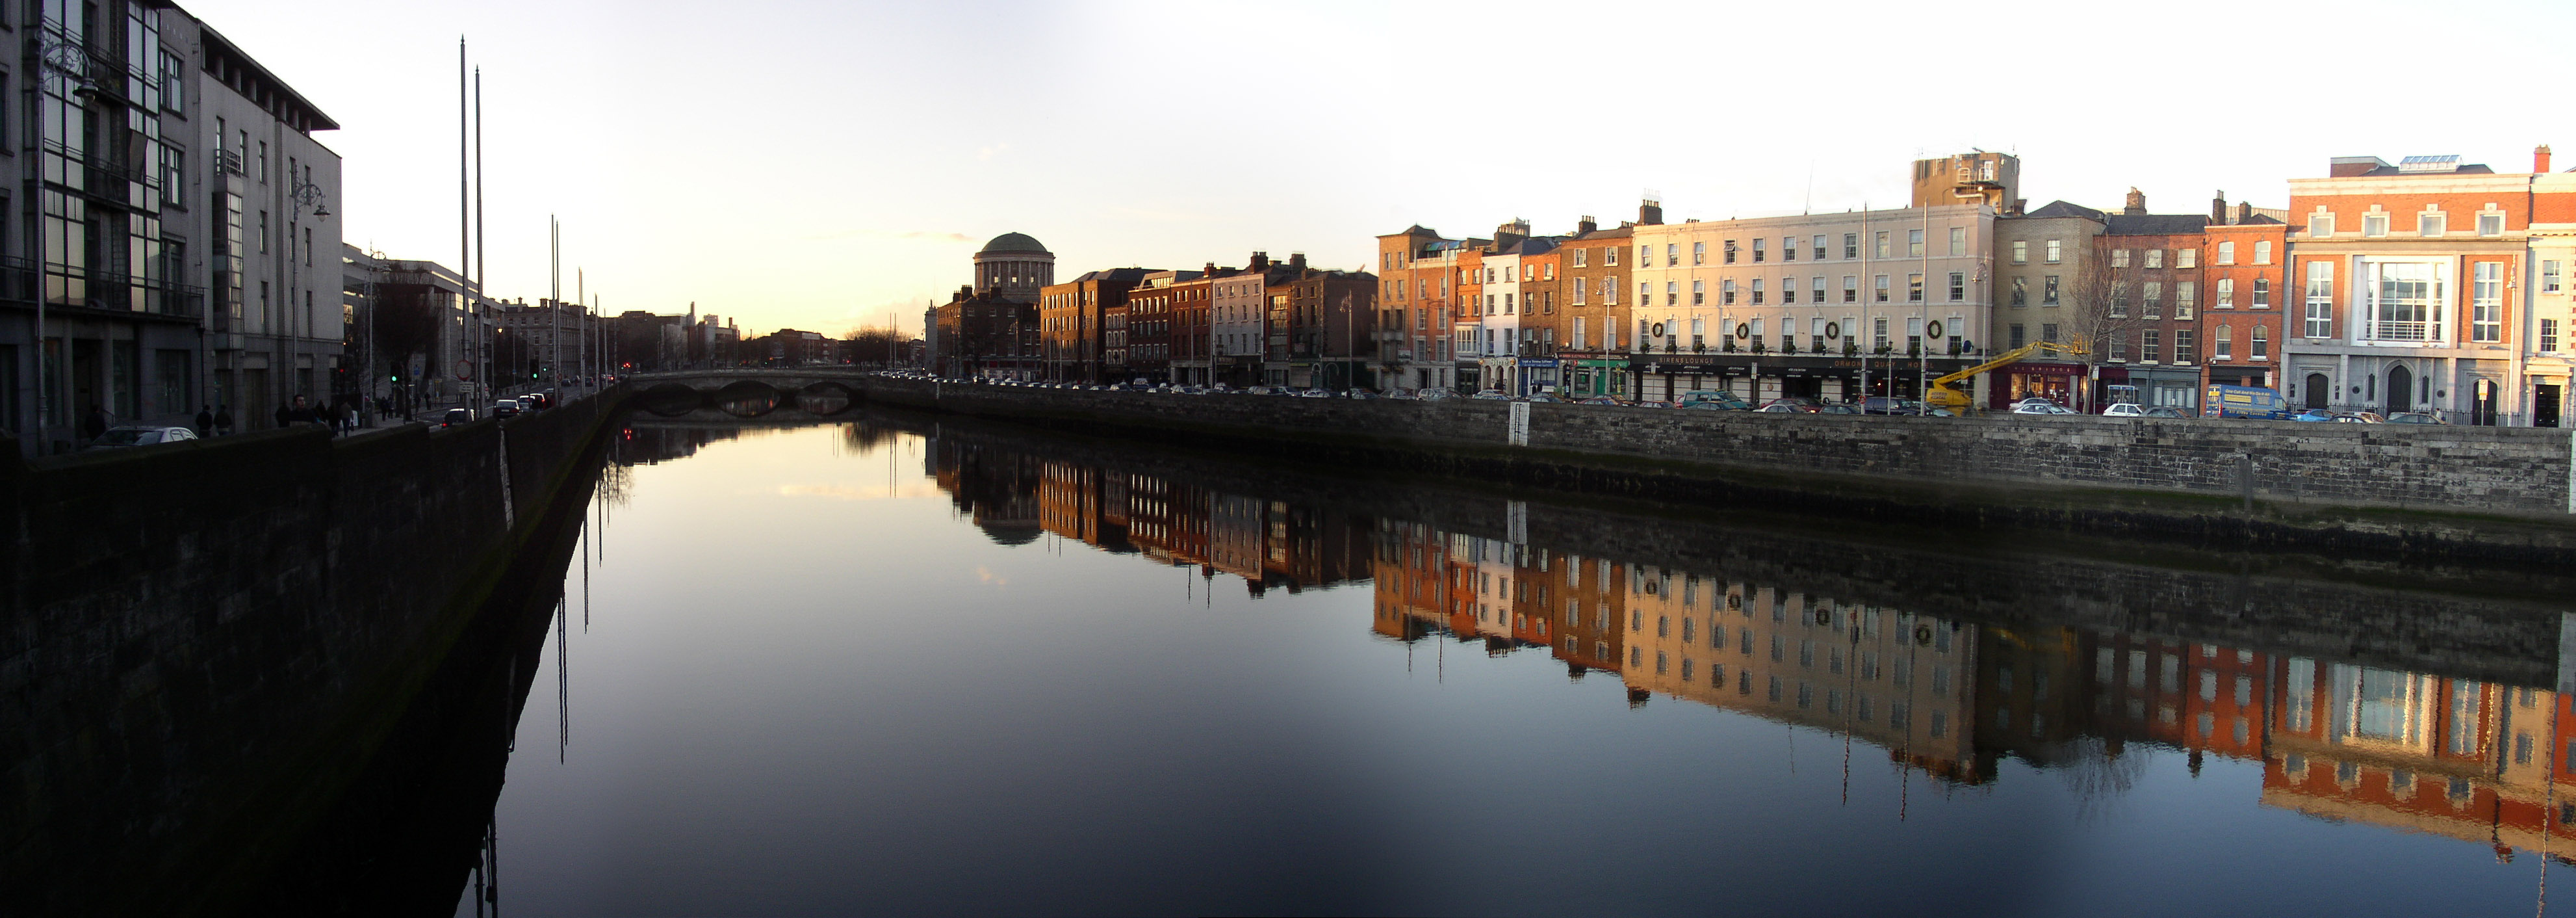 A view upstream from Grattan Bridge, towards the Four Courts (the domed building), with Essex Quay and Wood Quay on the right bank (left of picture) and Upper Ormond Quay on the left bank (right of picture).